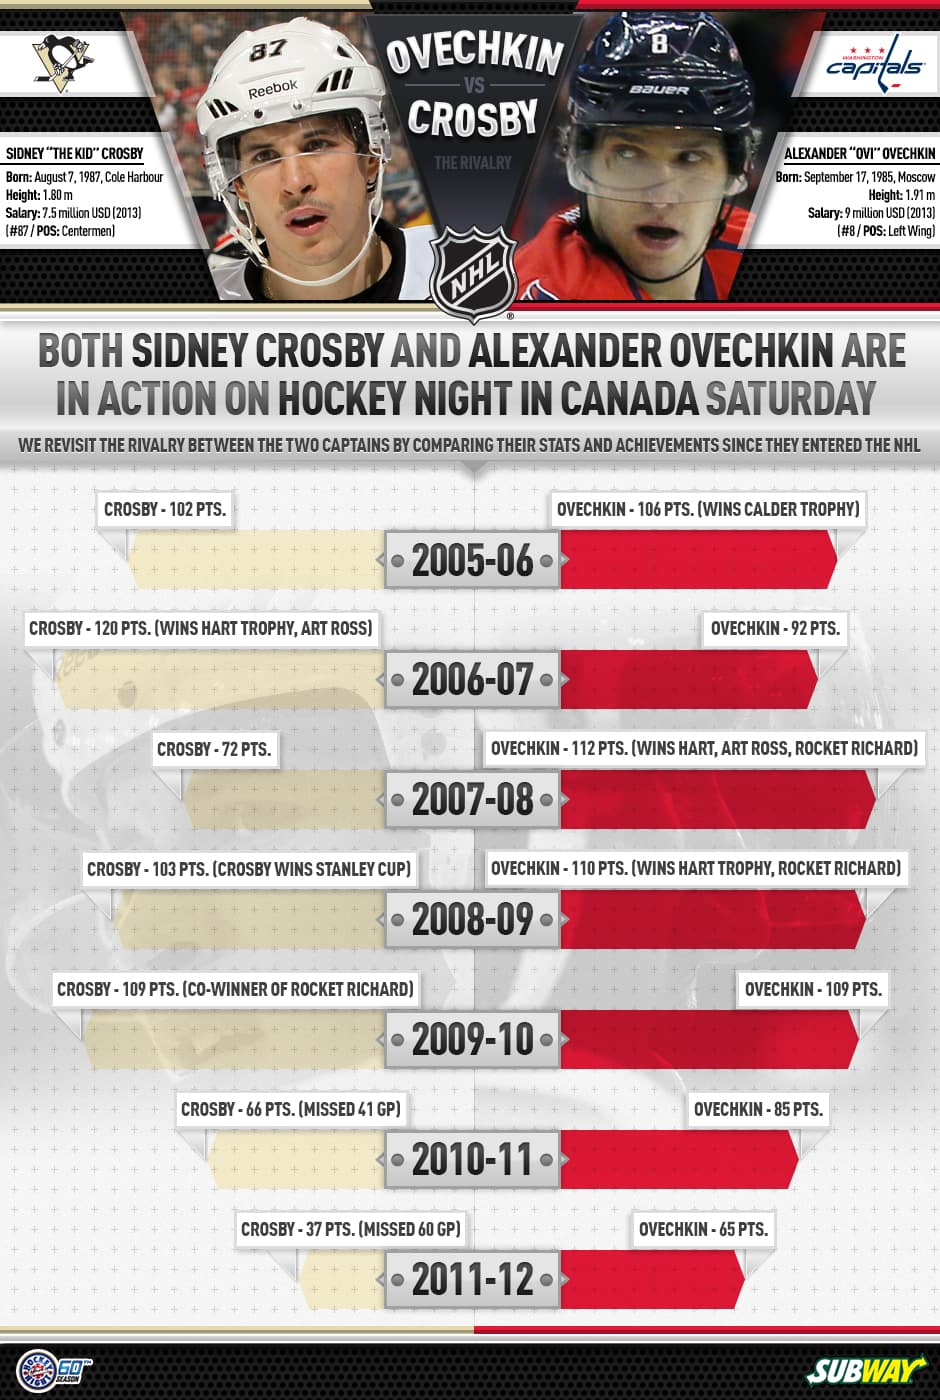 With Sidney Crosby and Alexander Ovechkin appearing on Hockey Night In Canada this weekend, we compare their stats and achievements since entering the NHL in 2005-06.